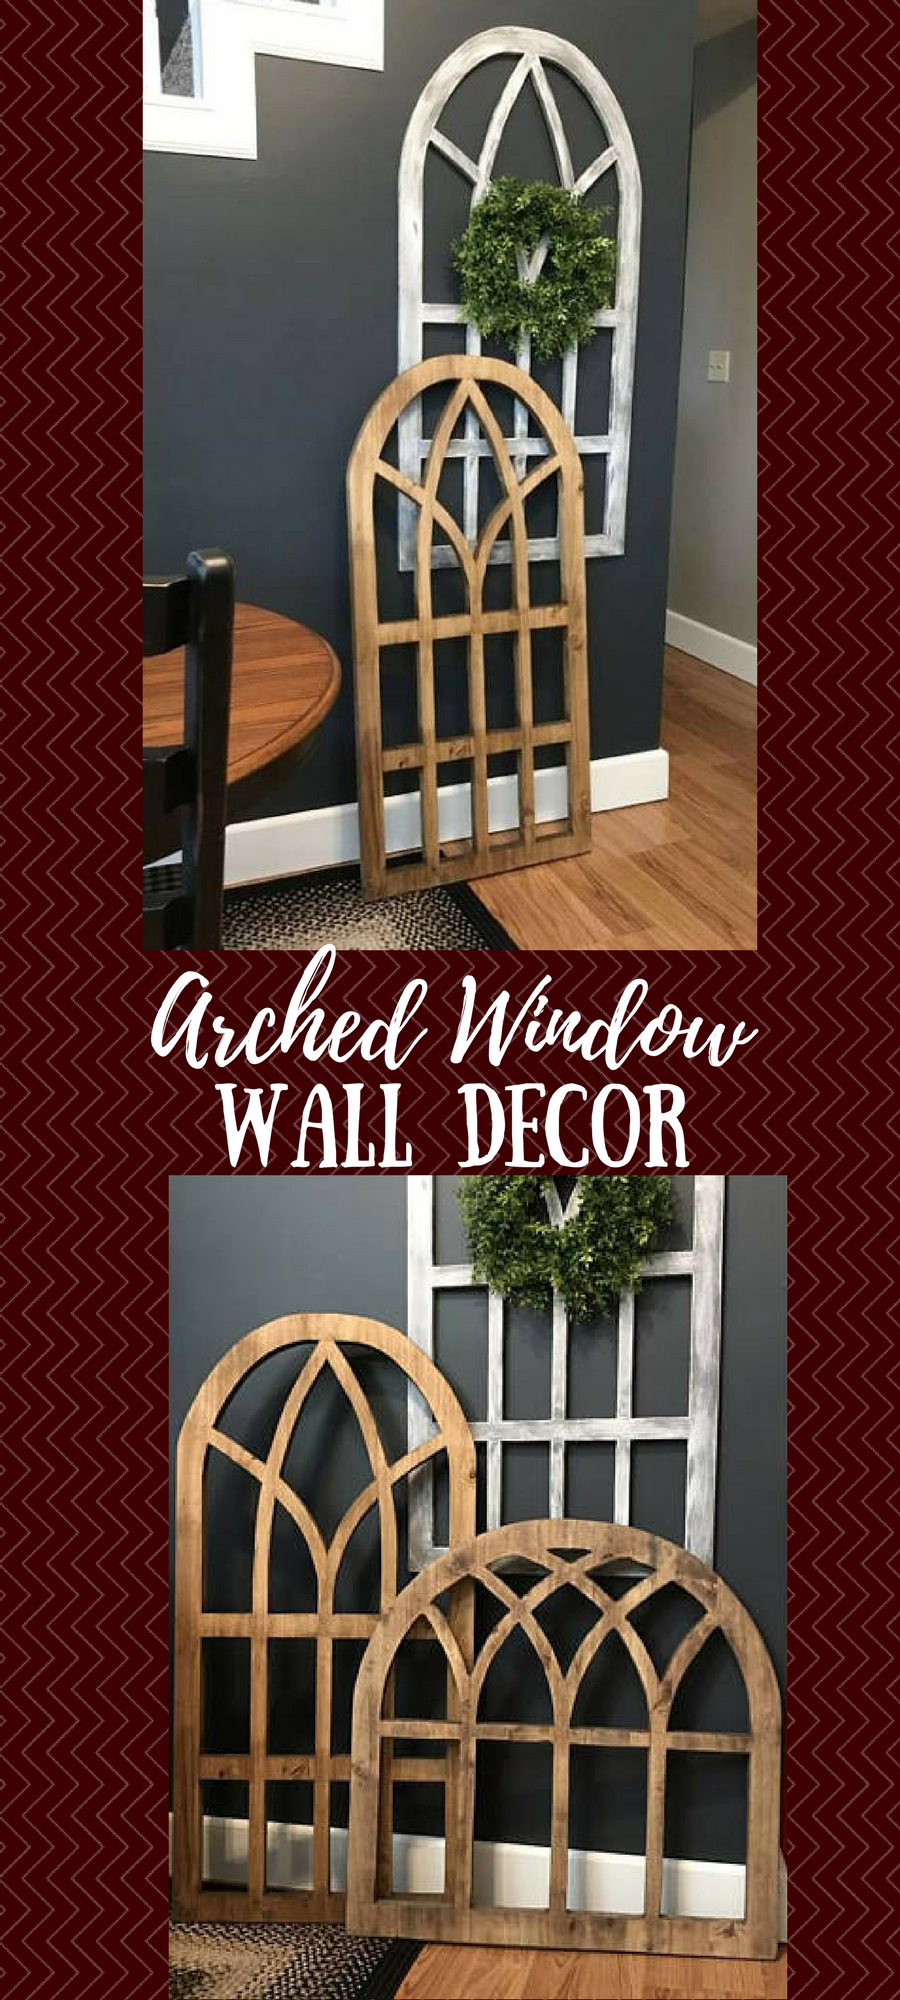 Window dressing ideas for arched windows  i love the look of wooden arched window decor this would be great